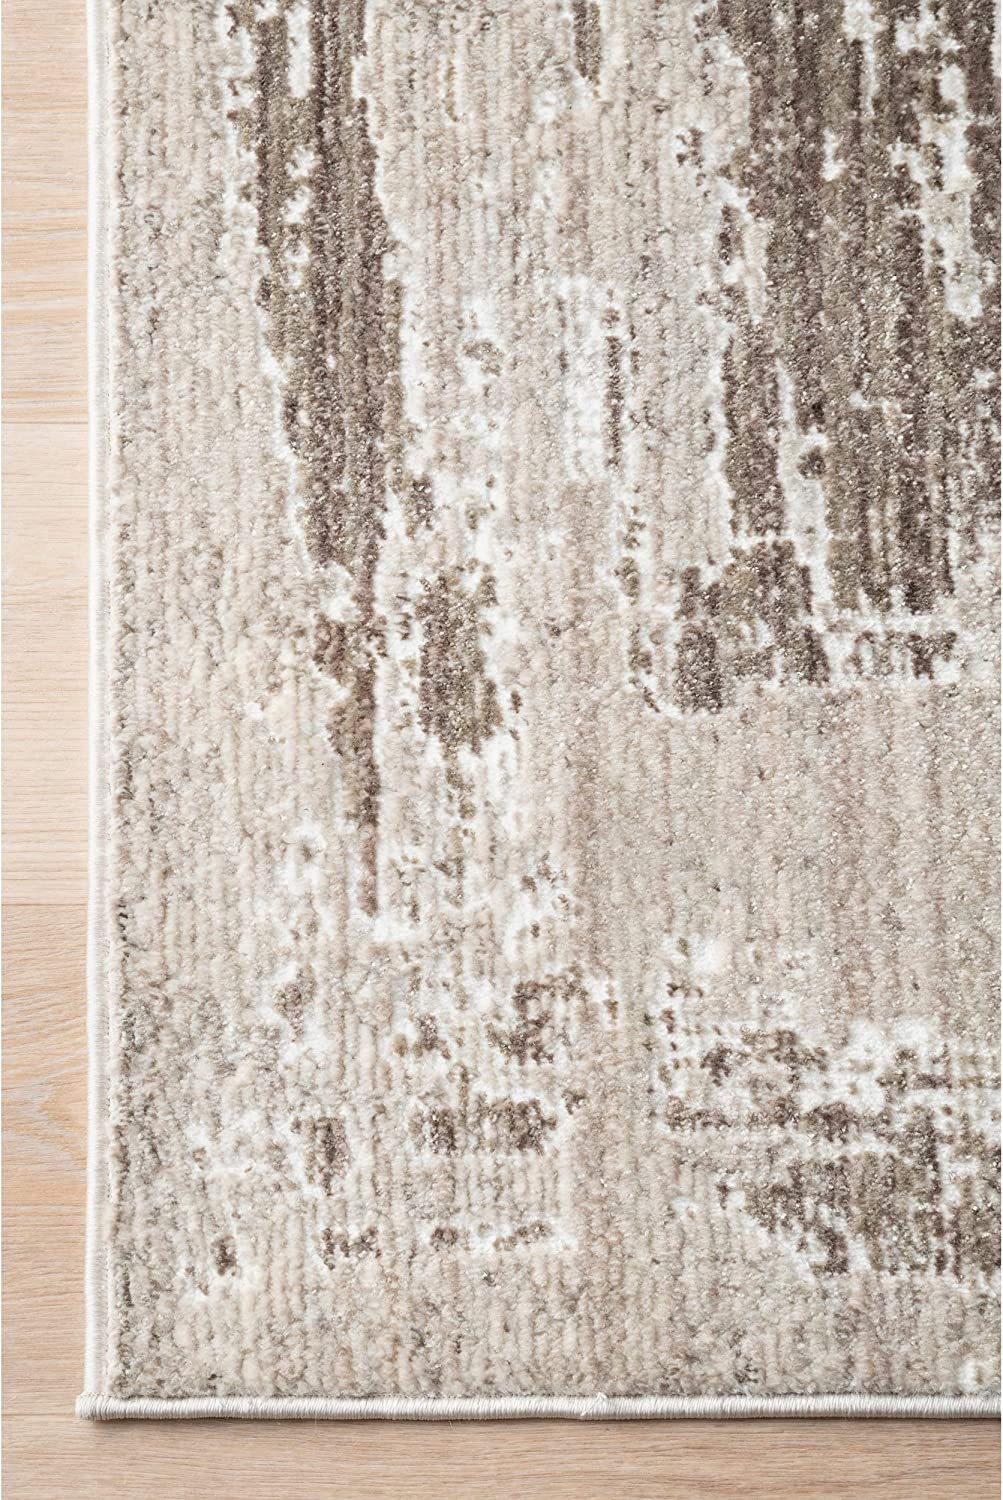 Nuloom Visconti Abstract Area Rug 6 7 X 9 Light Brown Furniture Decor